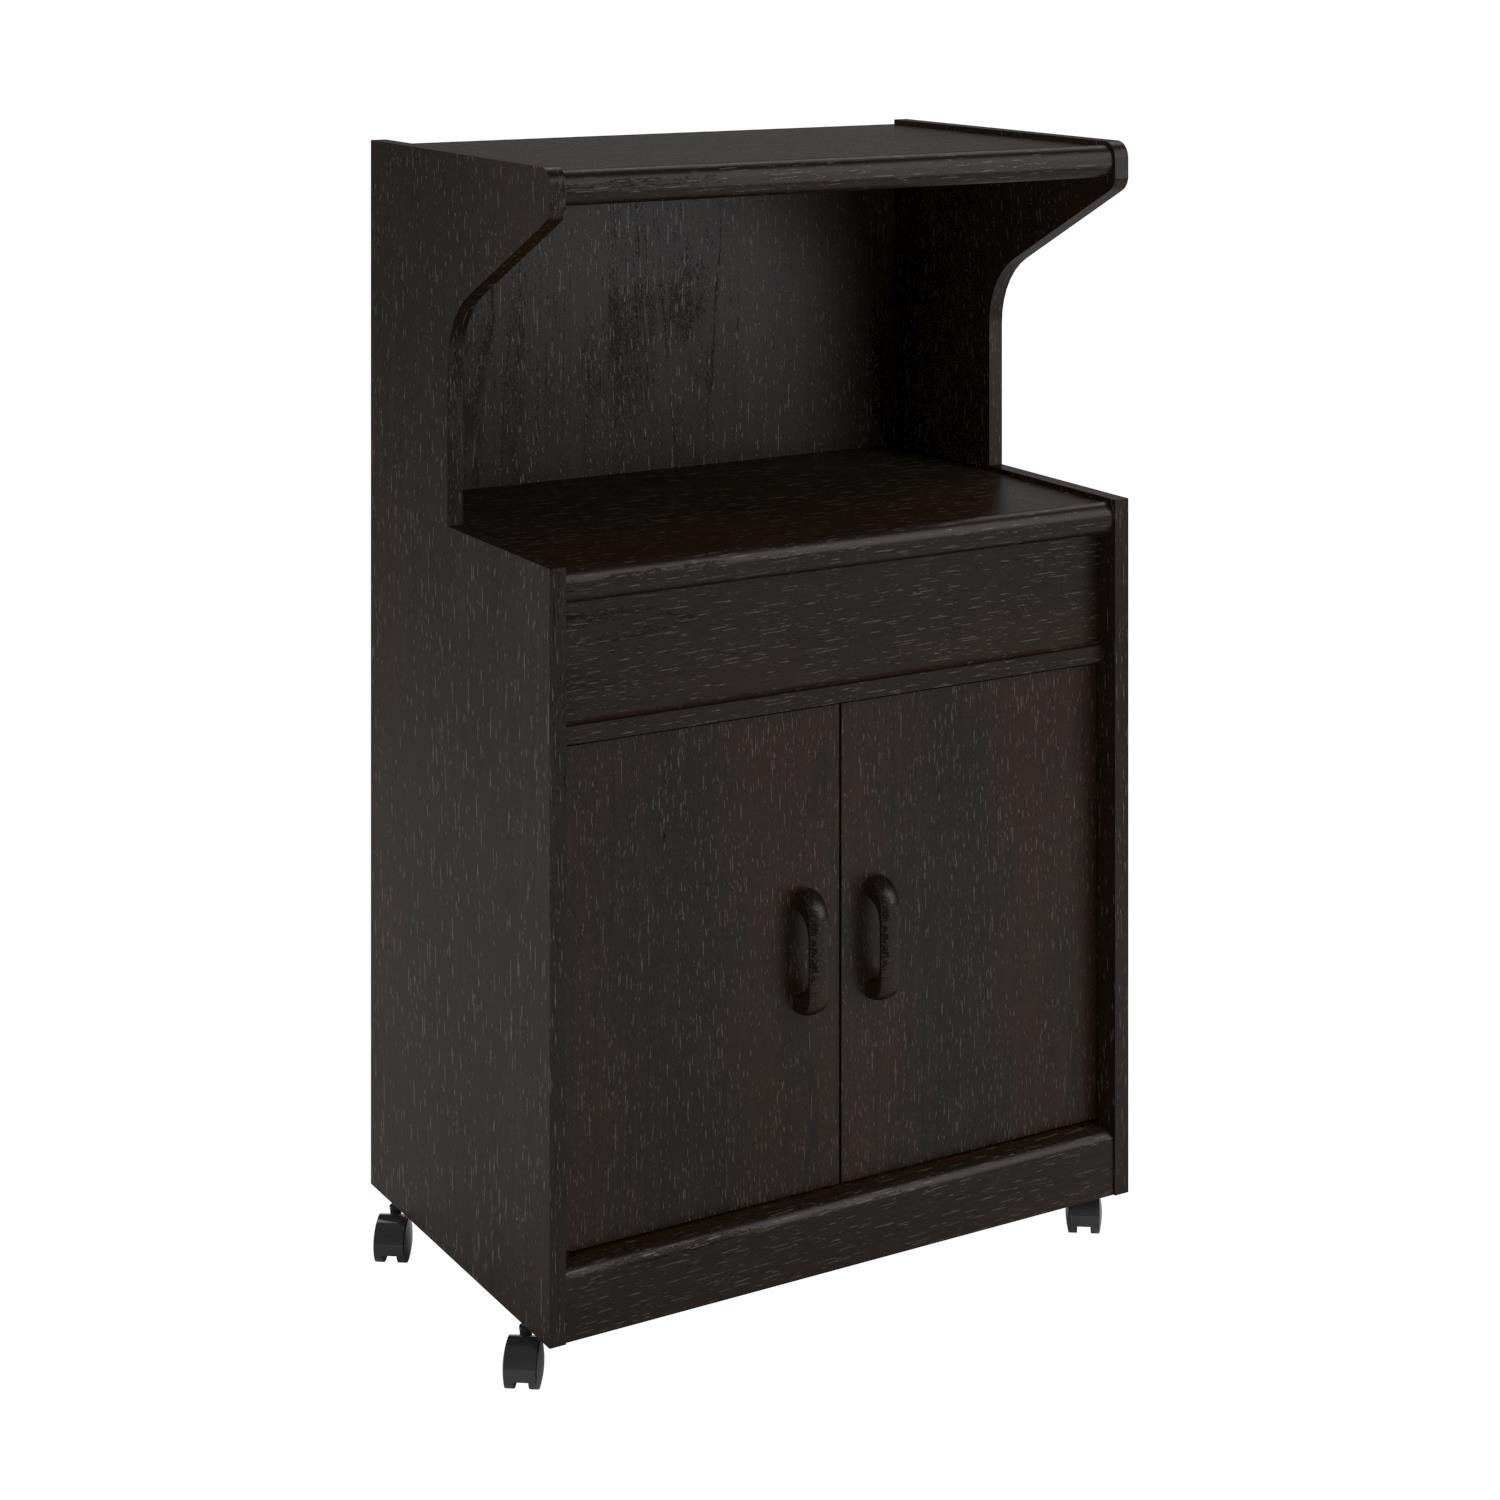 Ameriwood Home Reggie Microwave Cart with Shelf, Espresso Dorel Home Furnishings 5284012PCOM